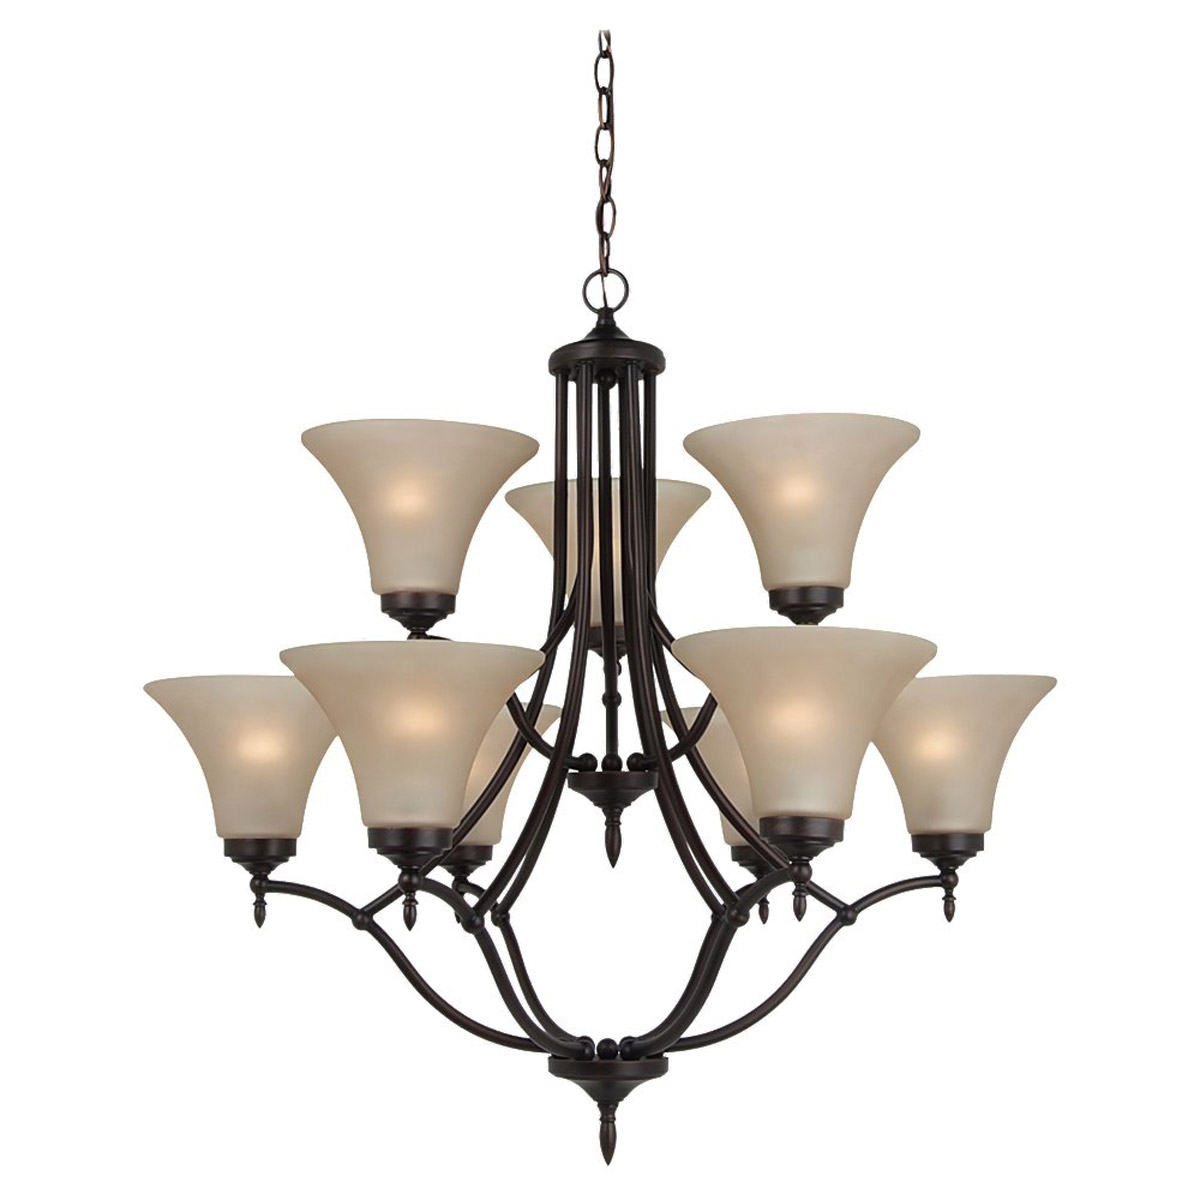 Sea Gull Lighting Montreal 9 Light Chandelier in Burnt Sienna 31182BLE-710